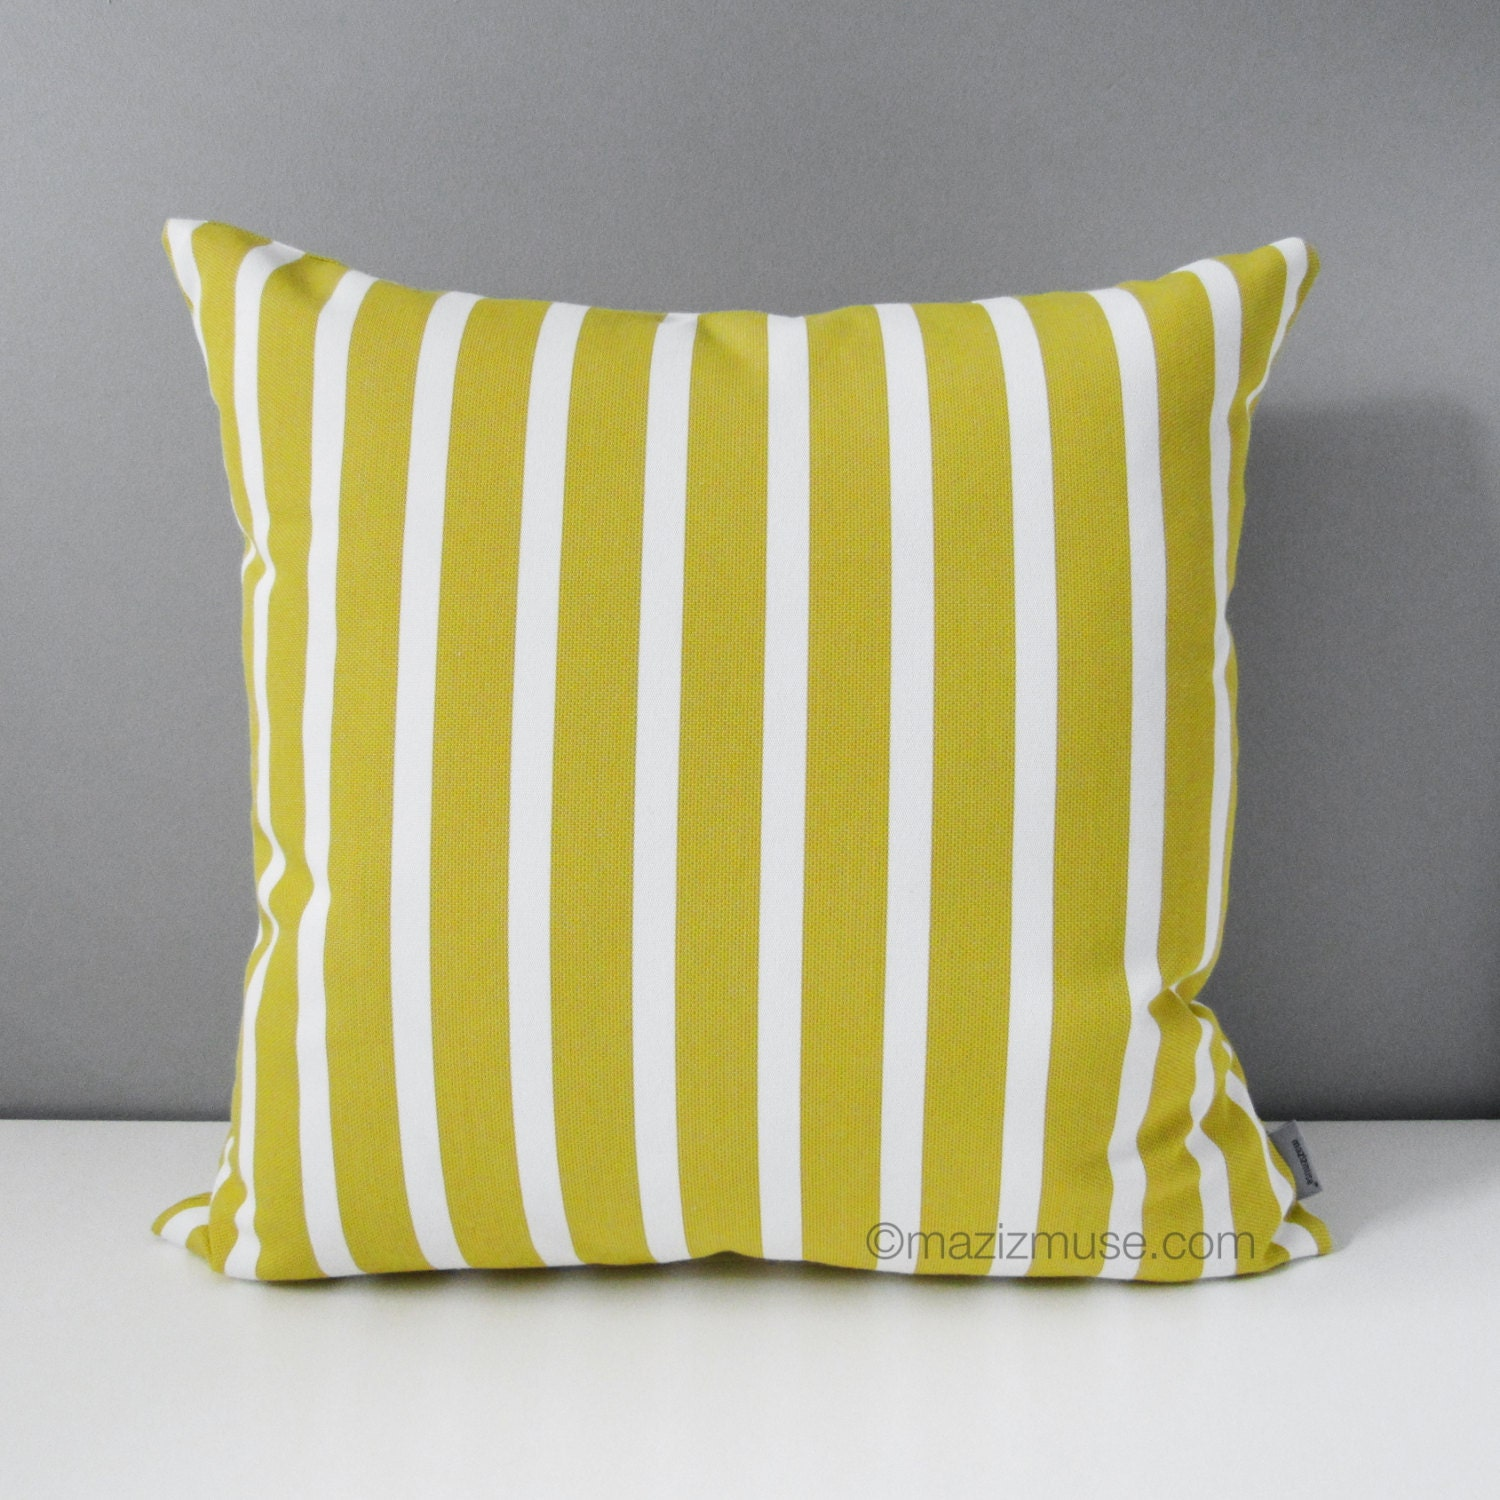 Citron Yellow & White Striped Outdoor Pillow Cover Decorative